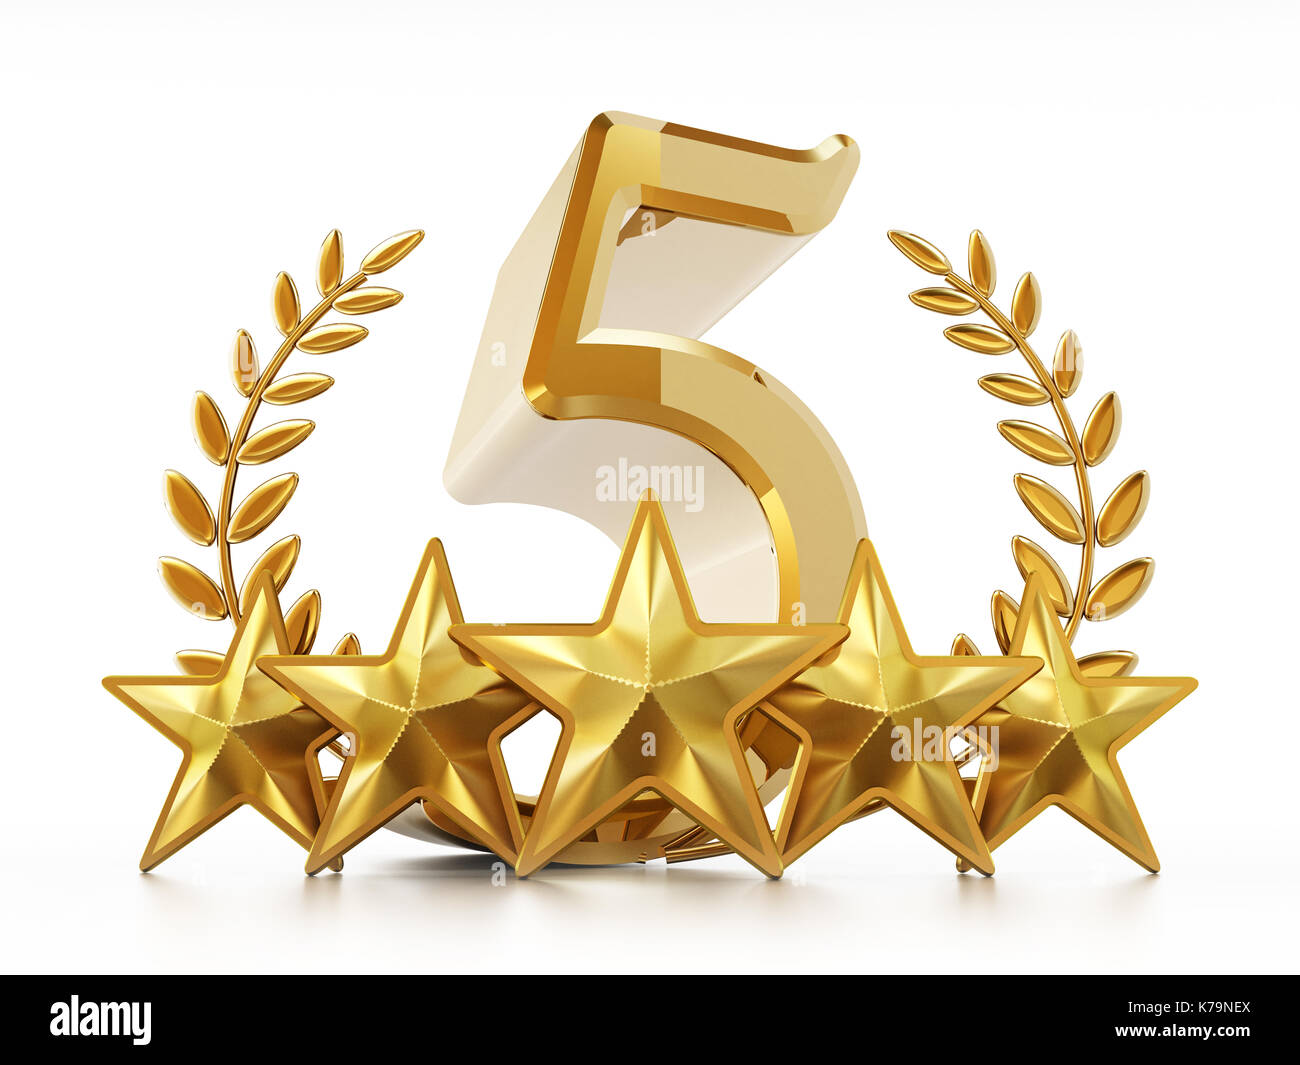 Number 5 Stars And Laurels Isolated On White Background 3d Stock